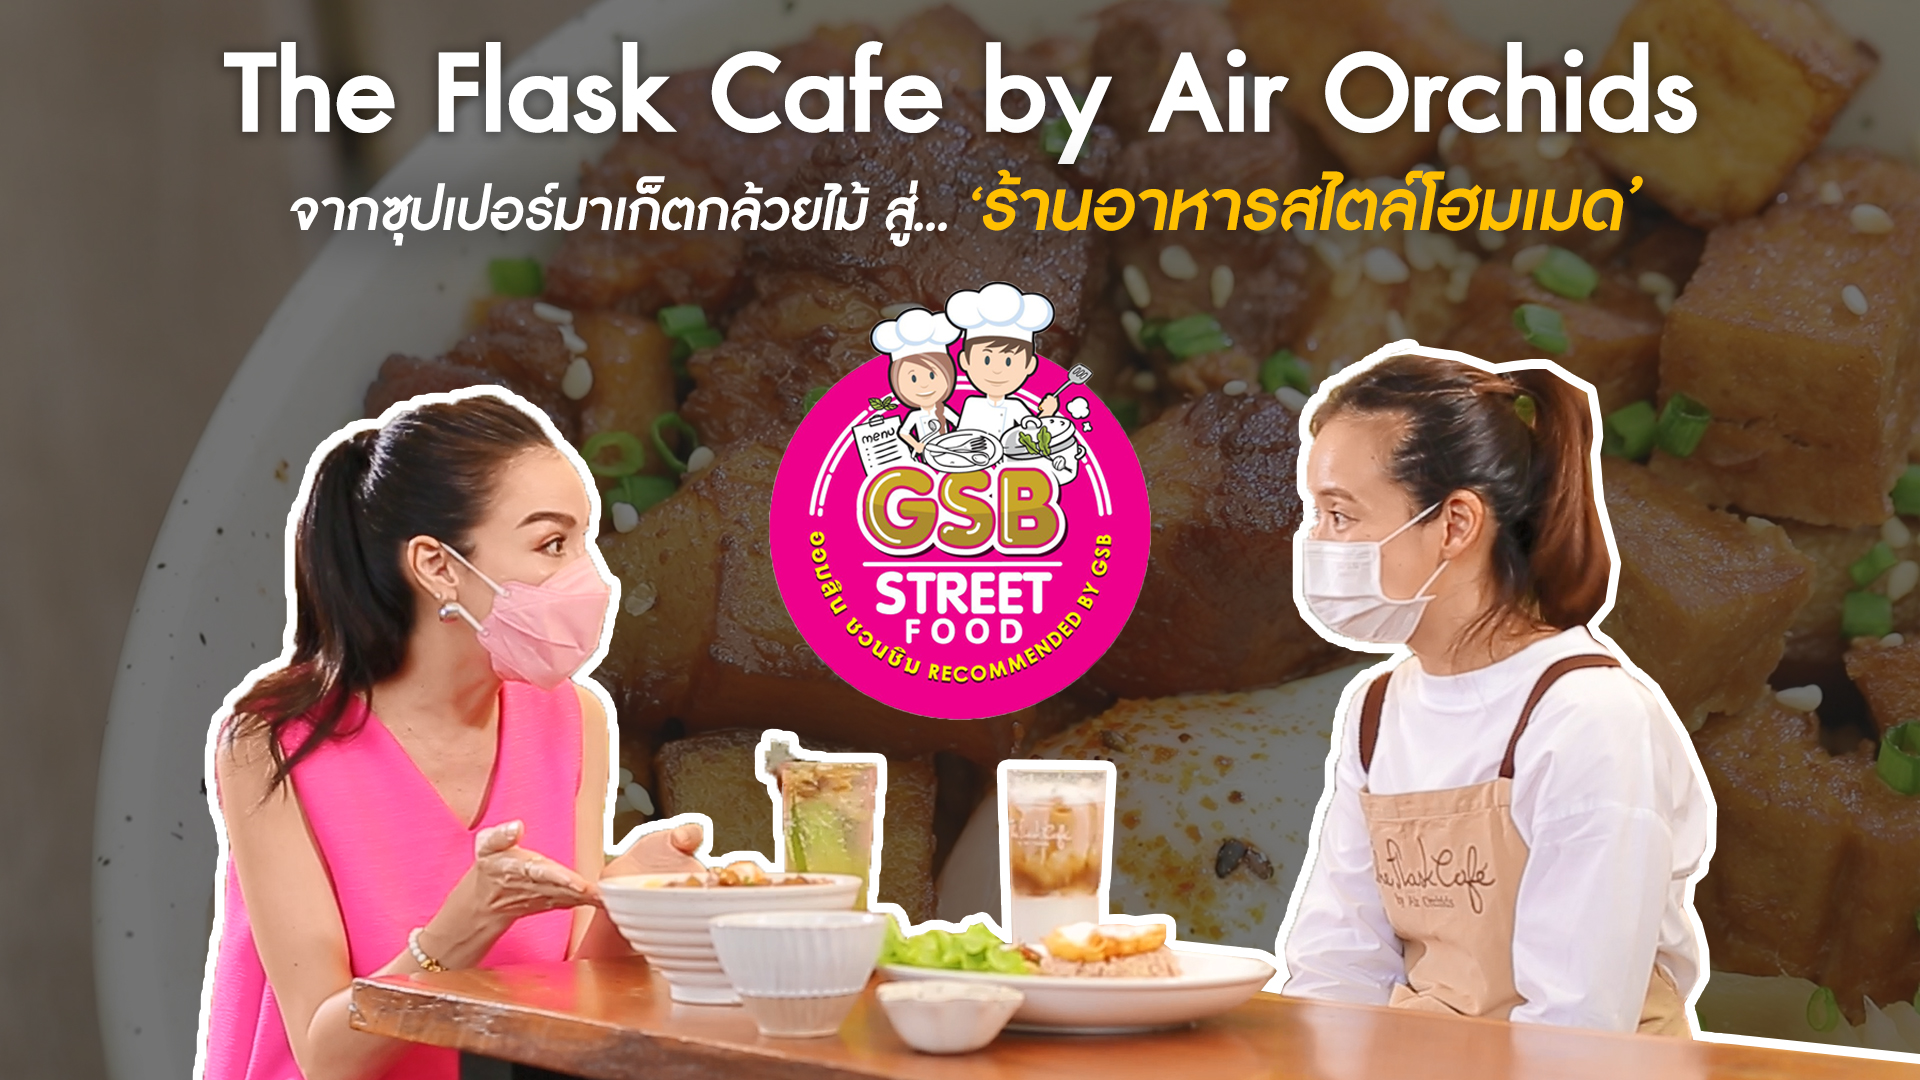 The Flask Cafe By Air Orchids